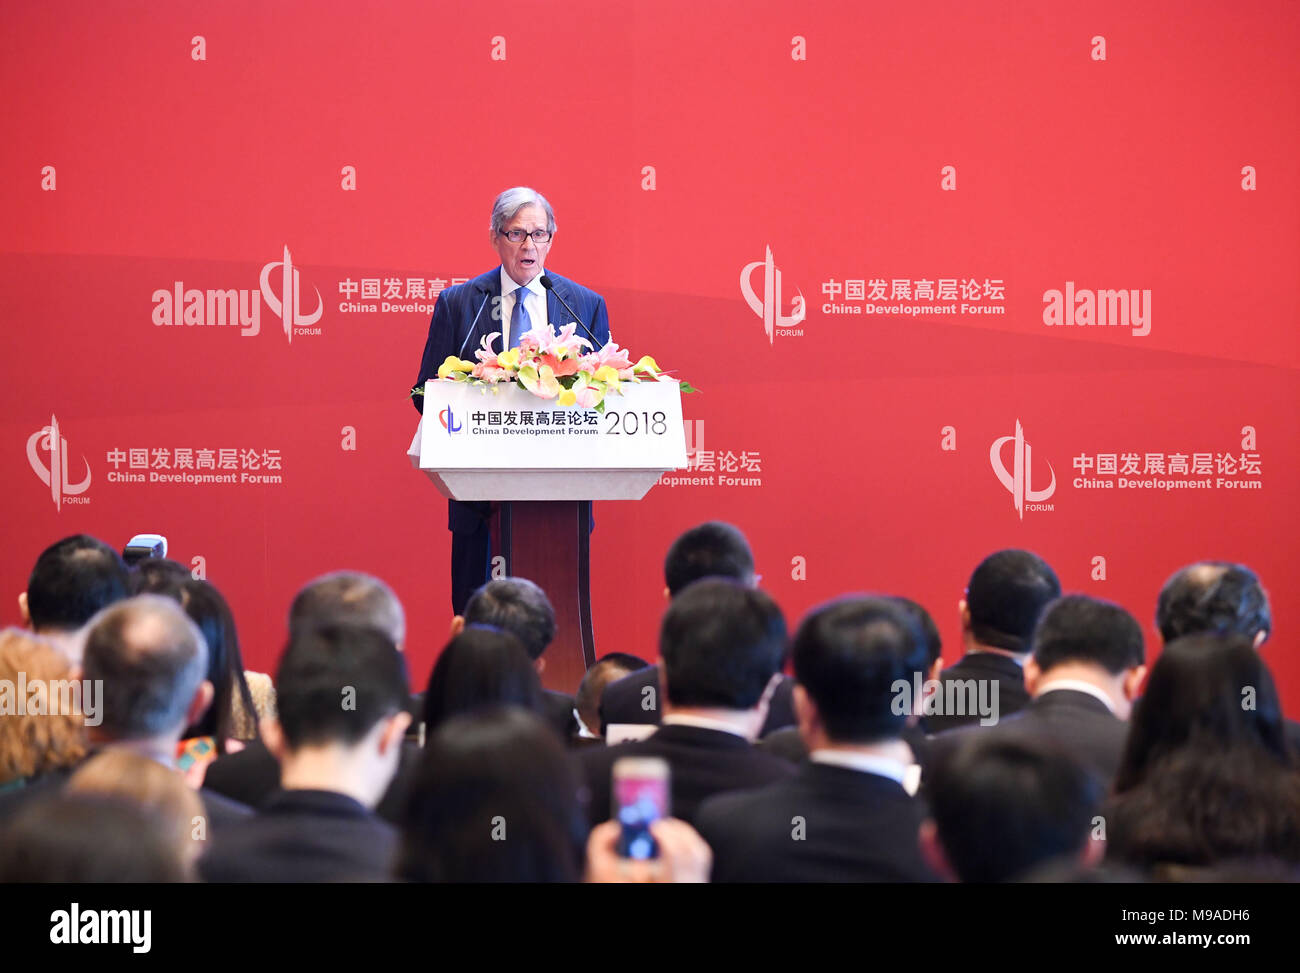 Beijing, China. 24th Mar, 2018. Peter Grauer, chairman of Bloomberg L.P., speaks at the China Development Forum (CDF) Economic Summit in Beijing, capital of China, March 24, 2018. China Development Forum, hosted by the Development Research Center of the State Council, is being held from March 24 to 26. Credit: Chen Yehua/Xinhua/Alamy Live News Stock Photo